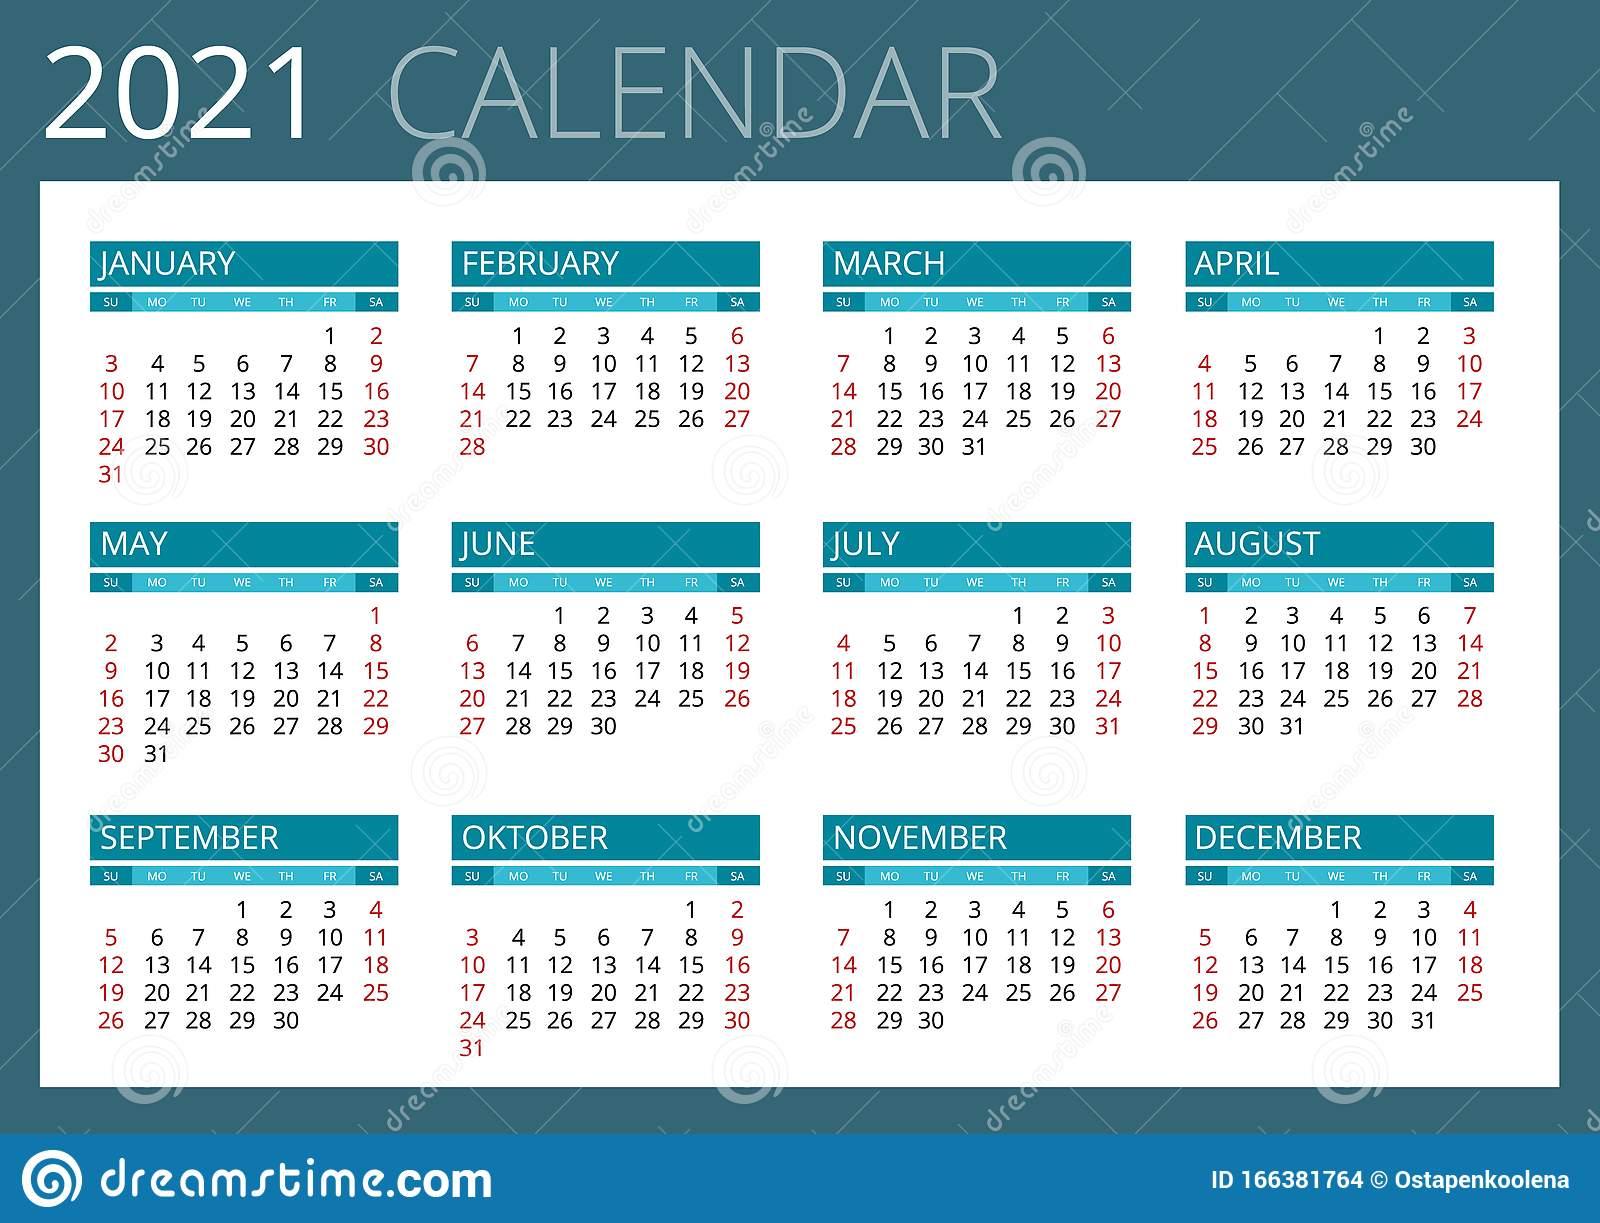 Calendrier Trial 4×4 2021 2021 Calendar, Print Template With Place For Photo, Your Logo And